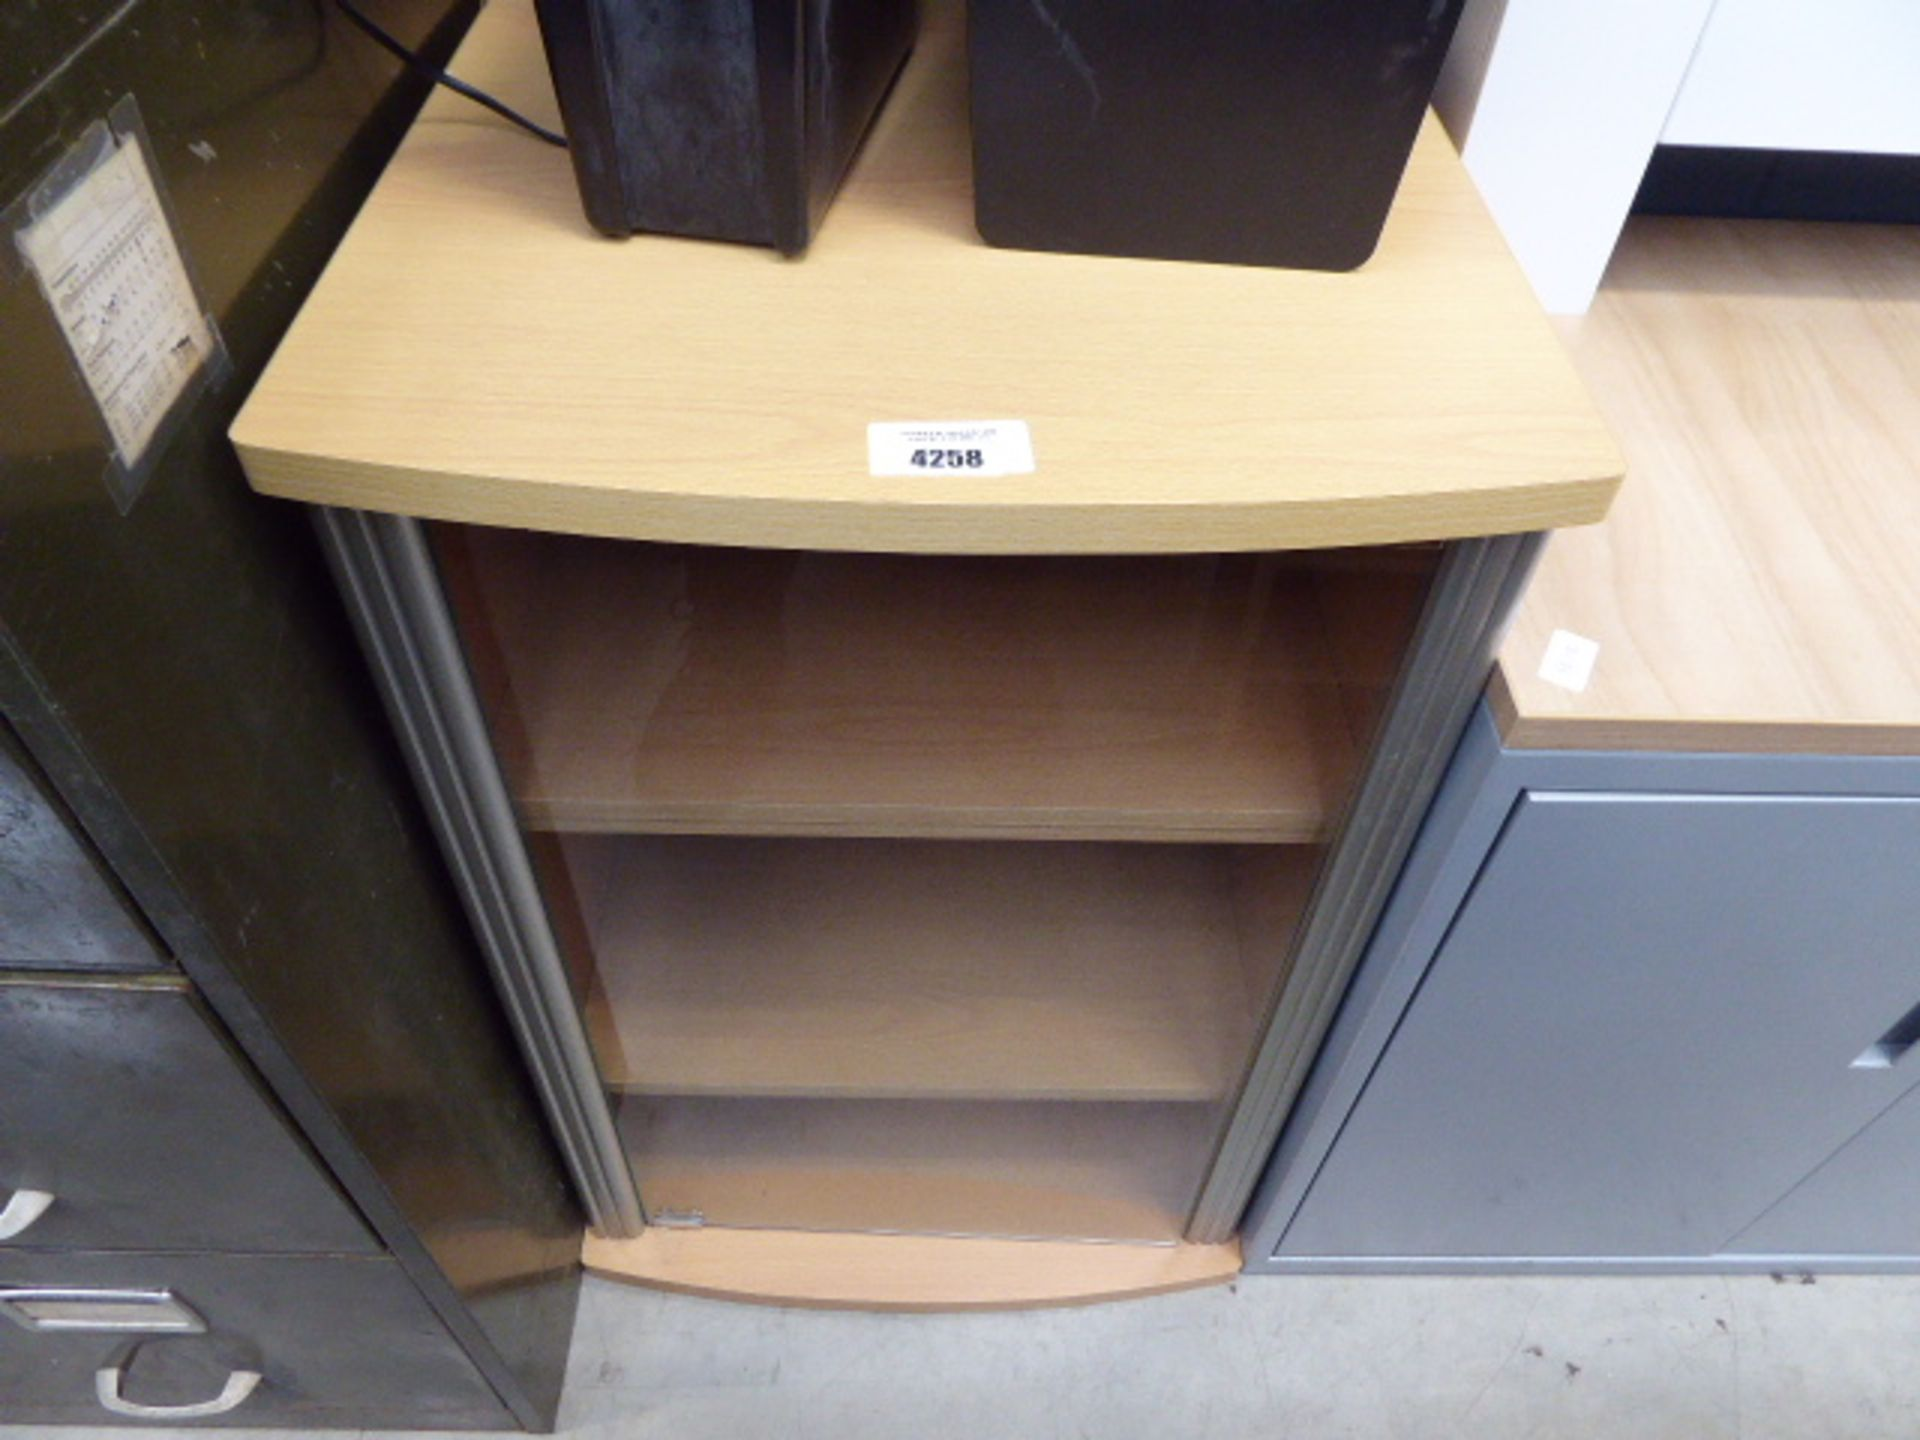 Lot 4258 - Stereo cabinet